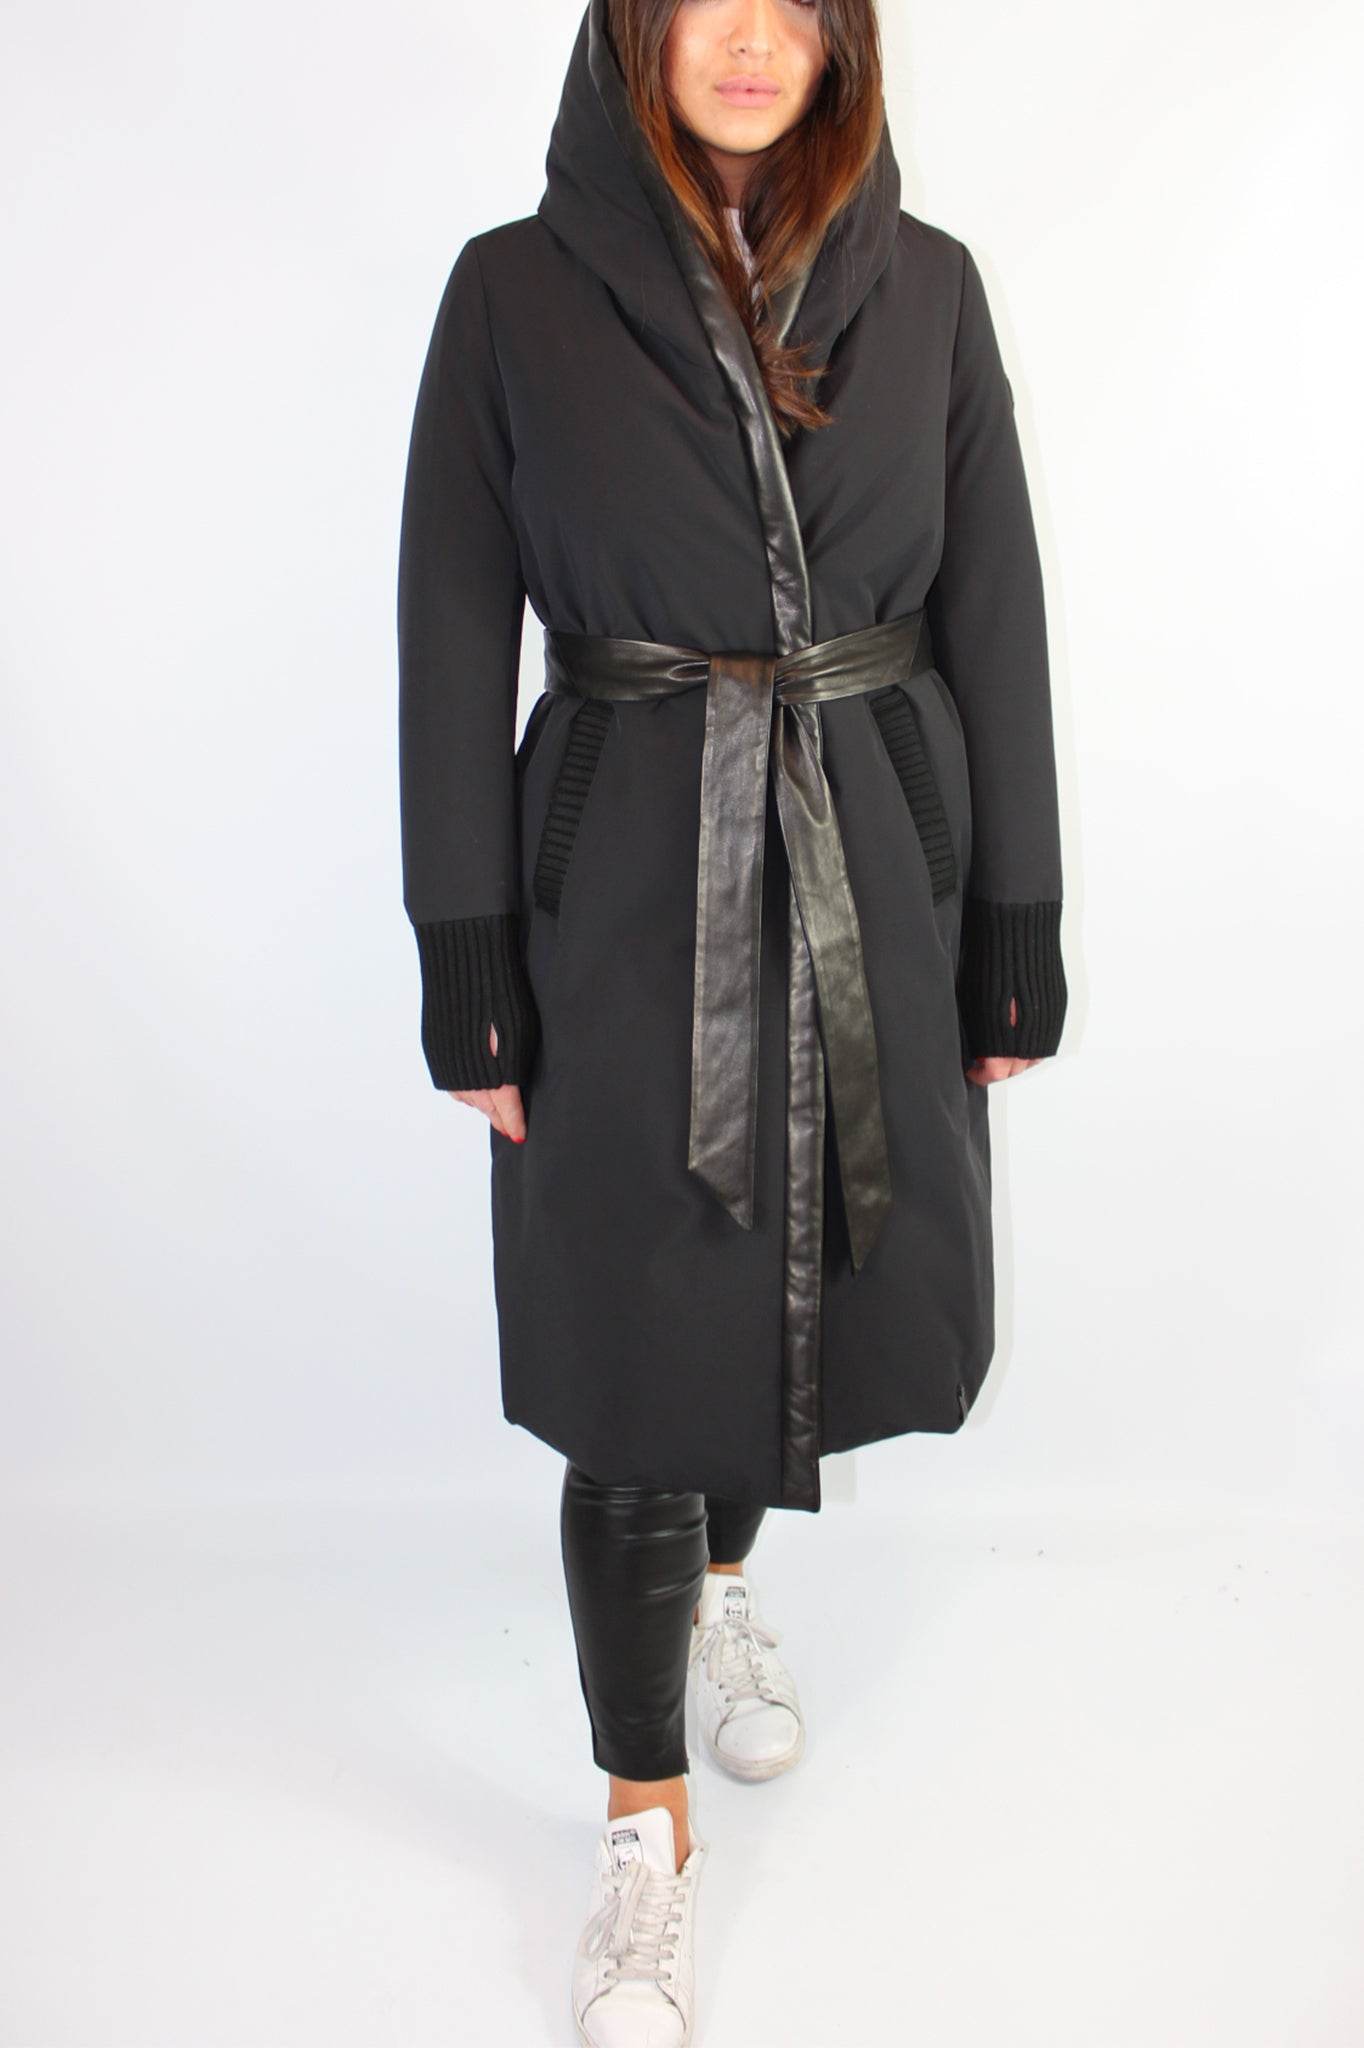 Rudsak Black Belted Hooded Puffer Parka Coat